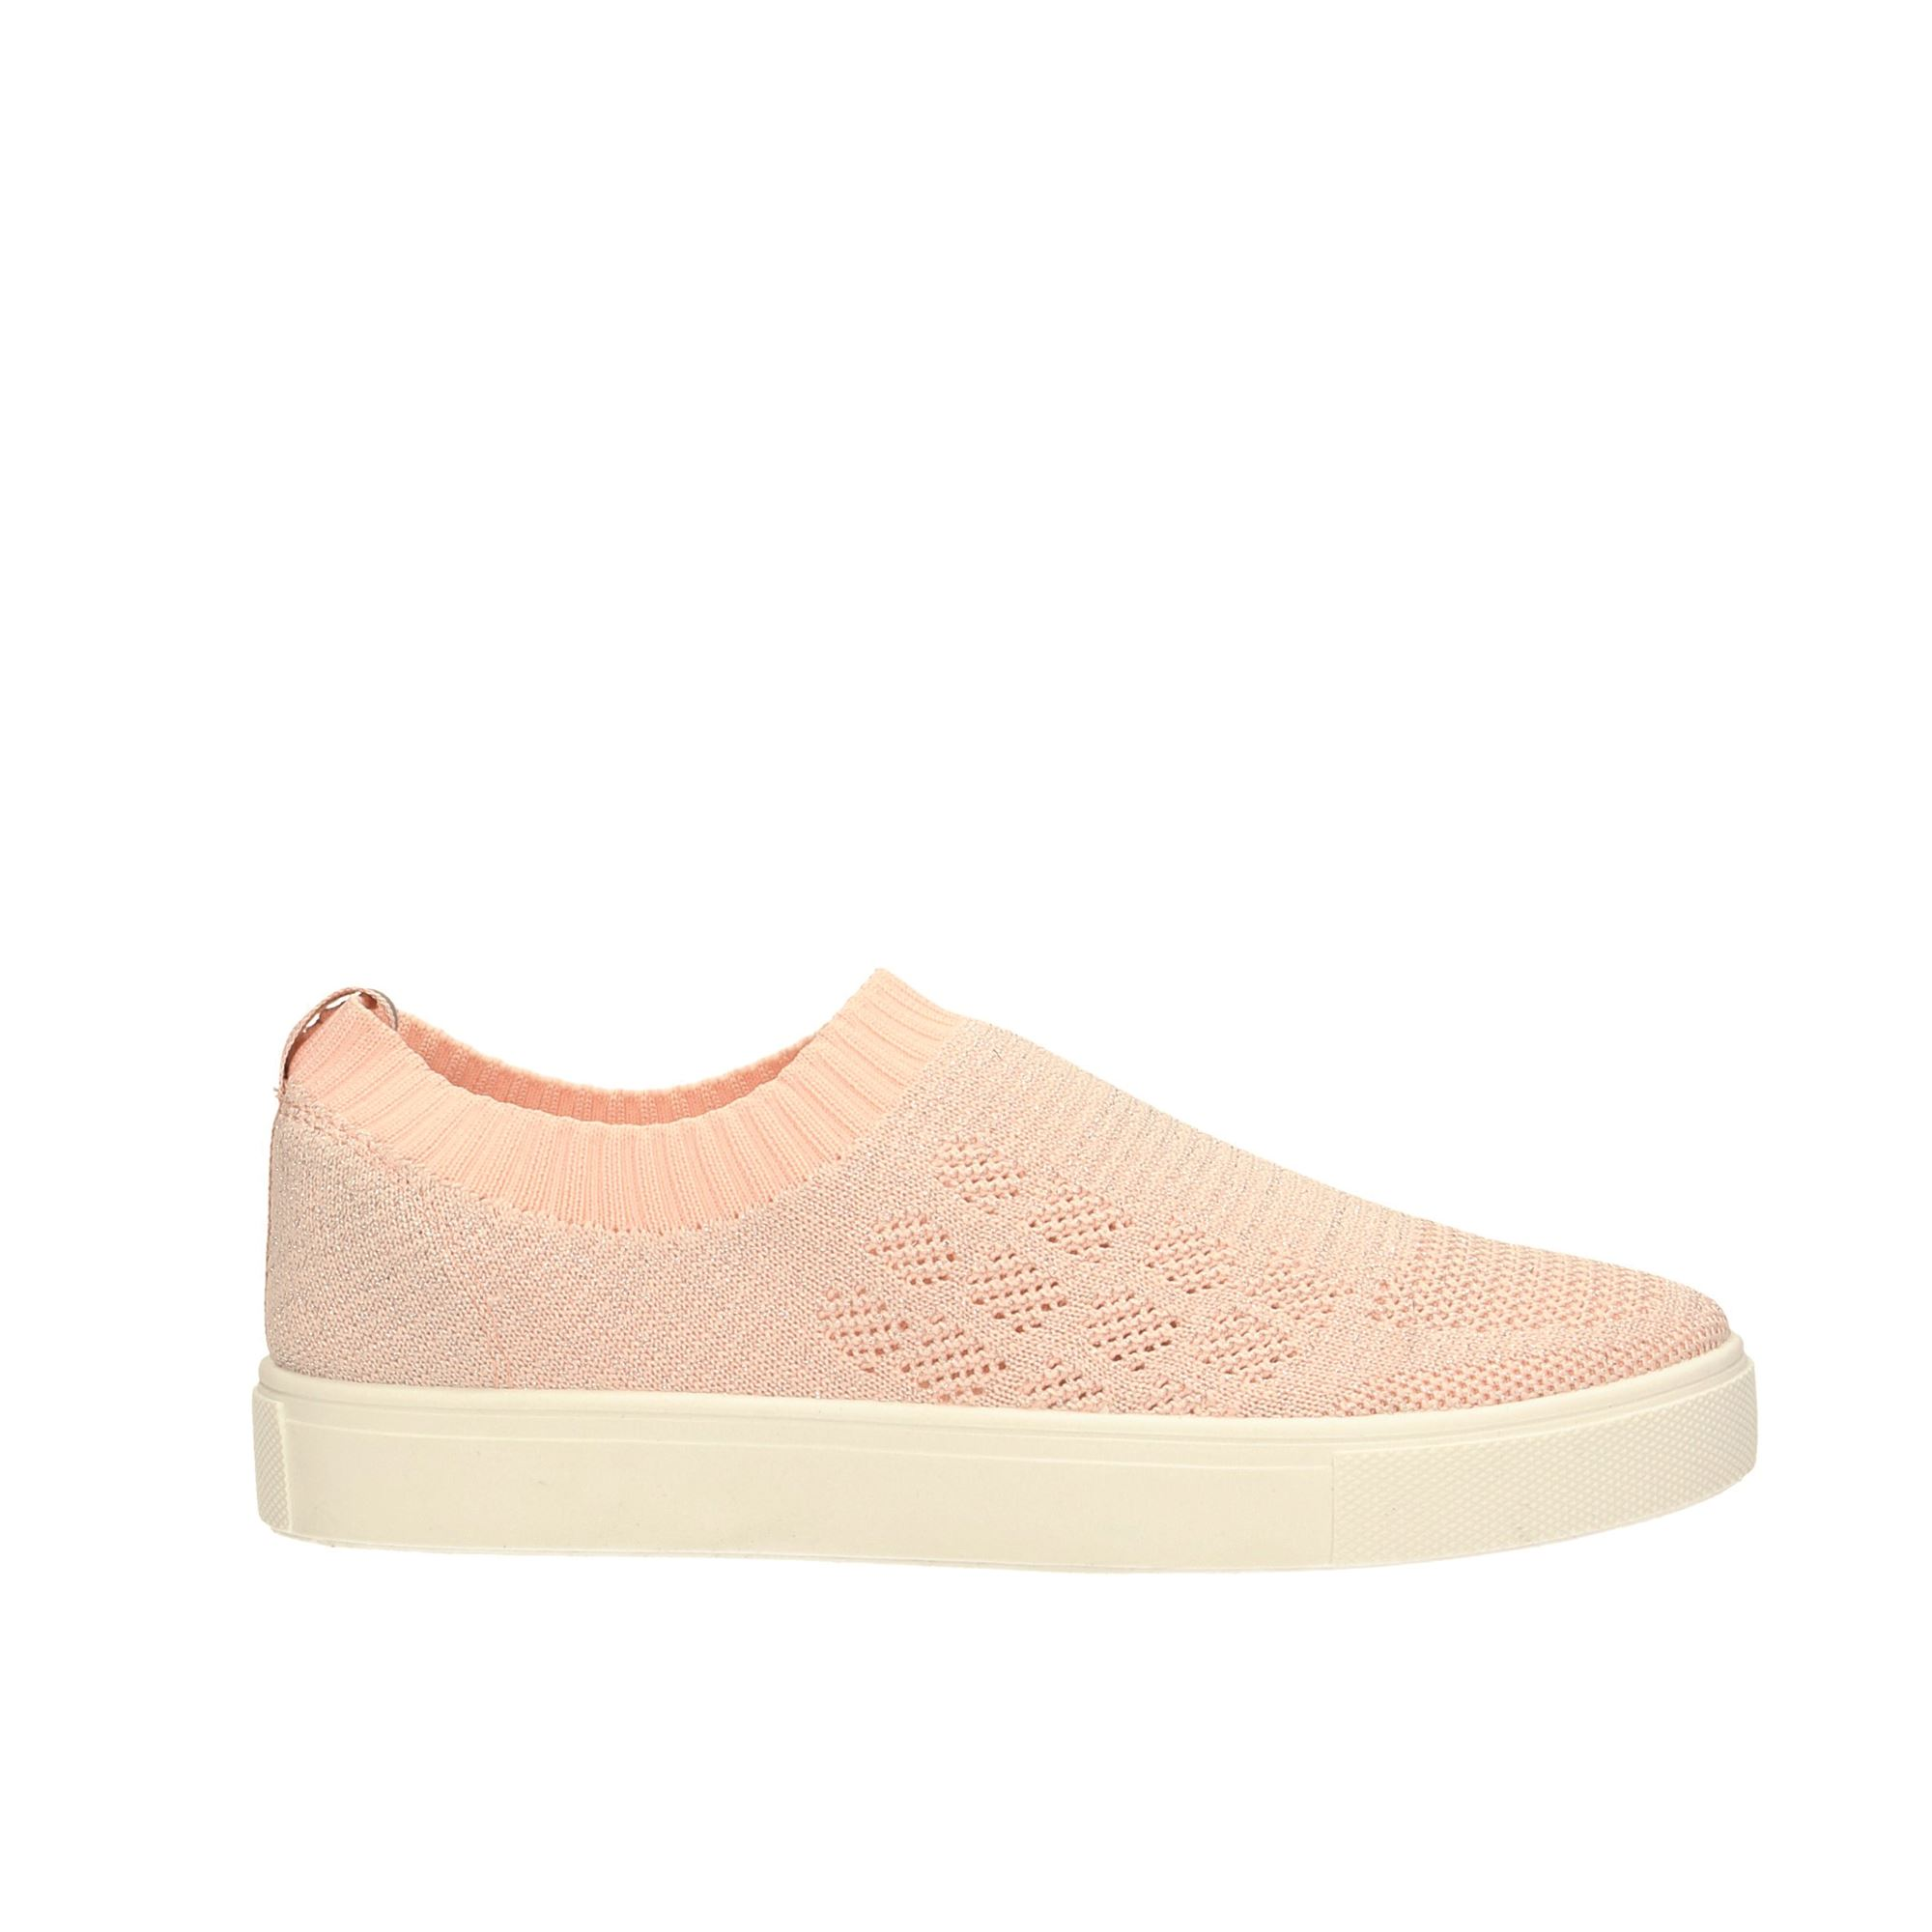 Tata Italia Shoes Woman Sneakers Pink GC012G-01